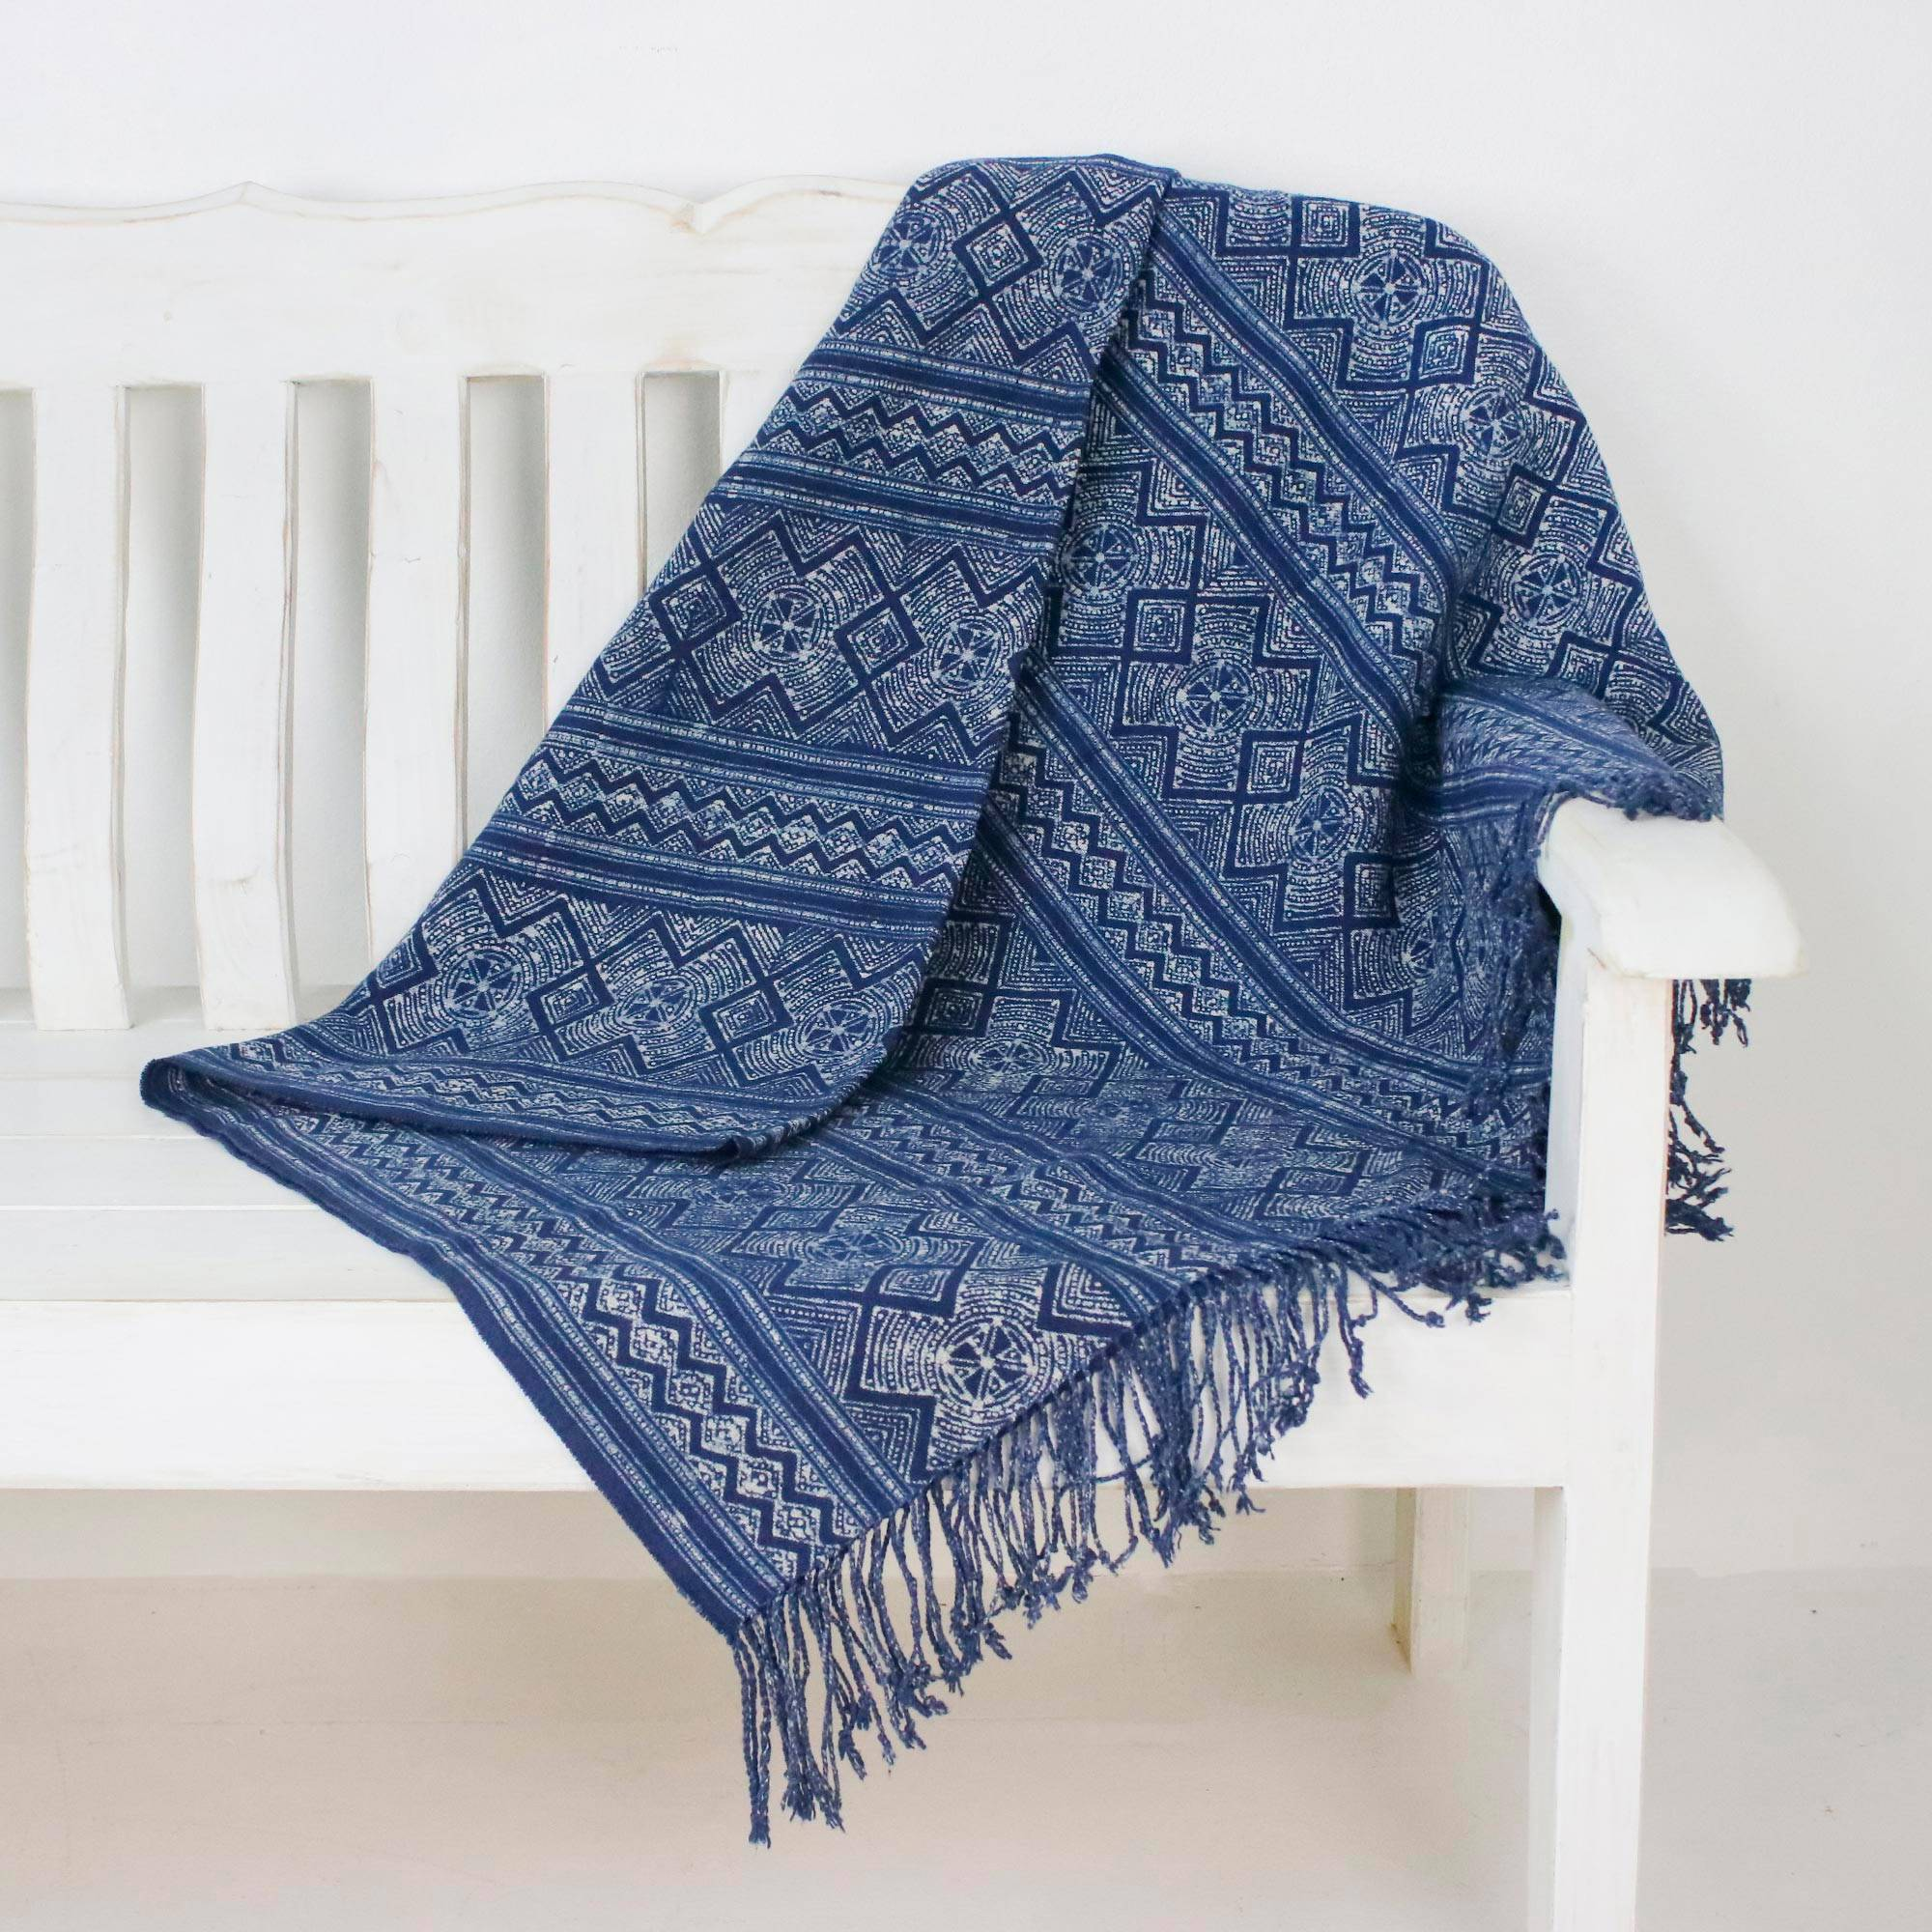 Batik Energy Geometric Batik Cotton Throw in Indigo